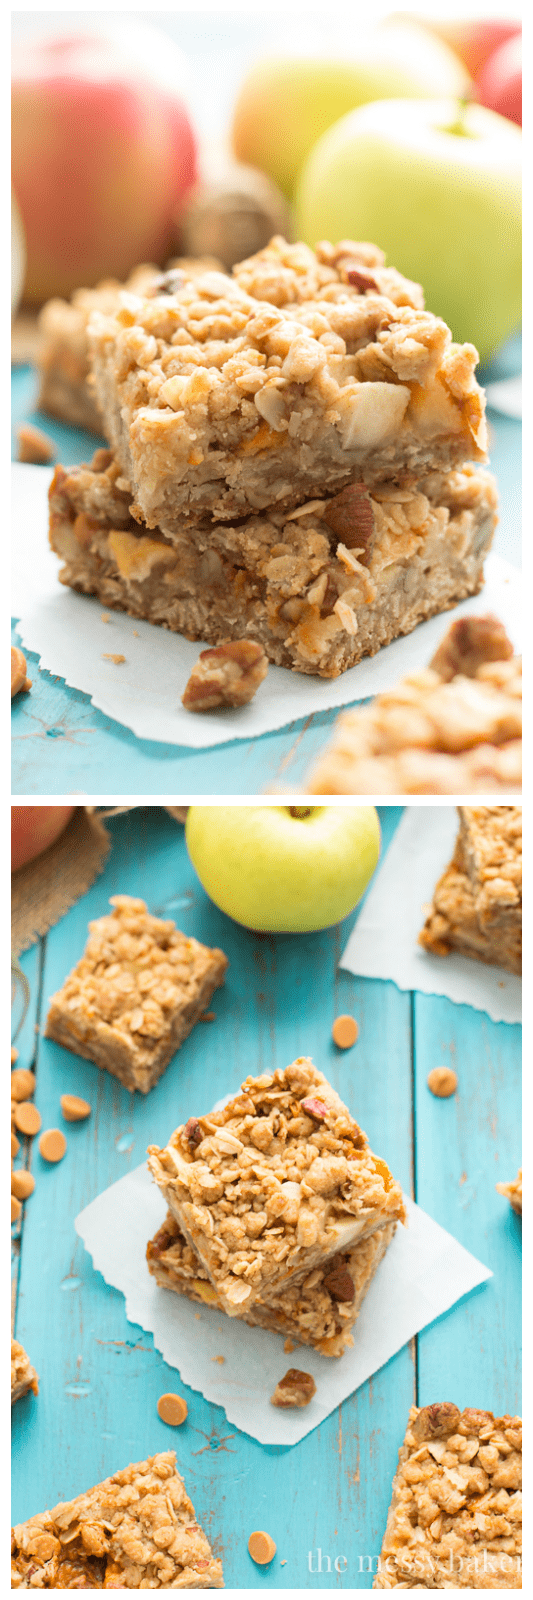 Butterscotch Apple Crumb Bars Recipe | www.themessybakerblog.com